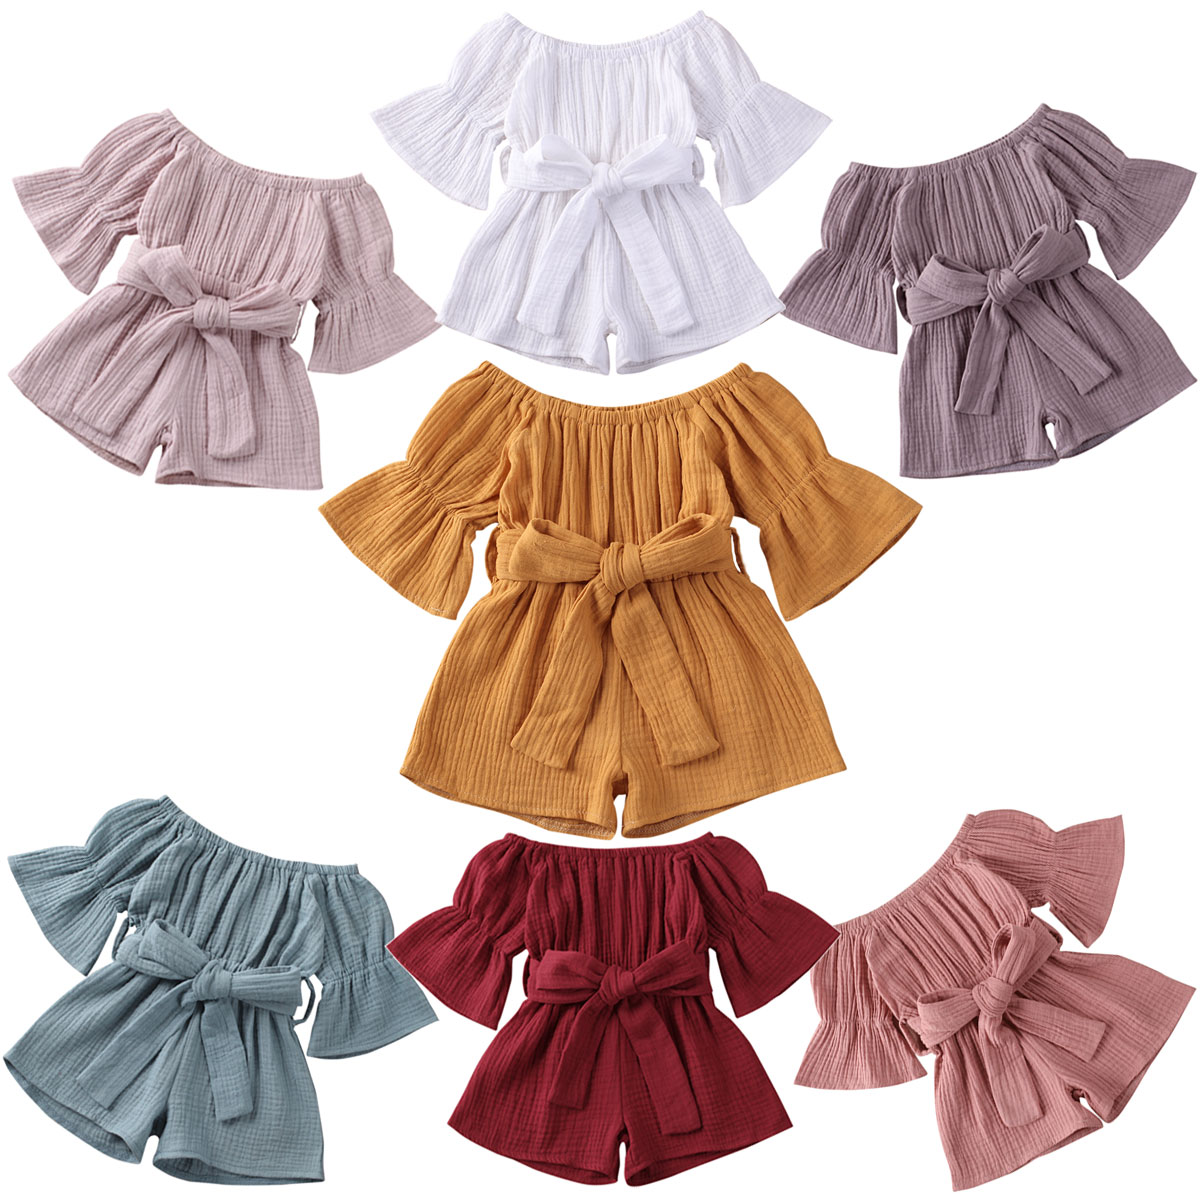 Infant Baby Girls Romper 6M-5T Rompers Overalls 7 Colors Flare Sleeve Solid Jumpsuits Clothes